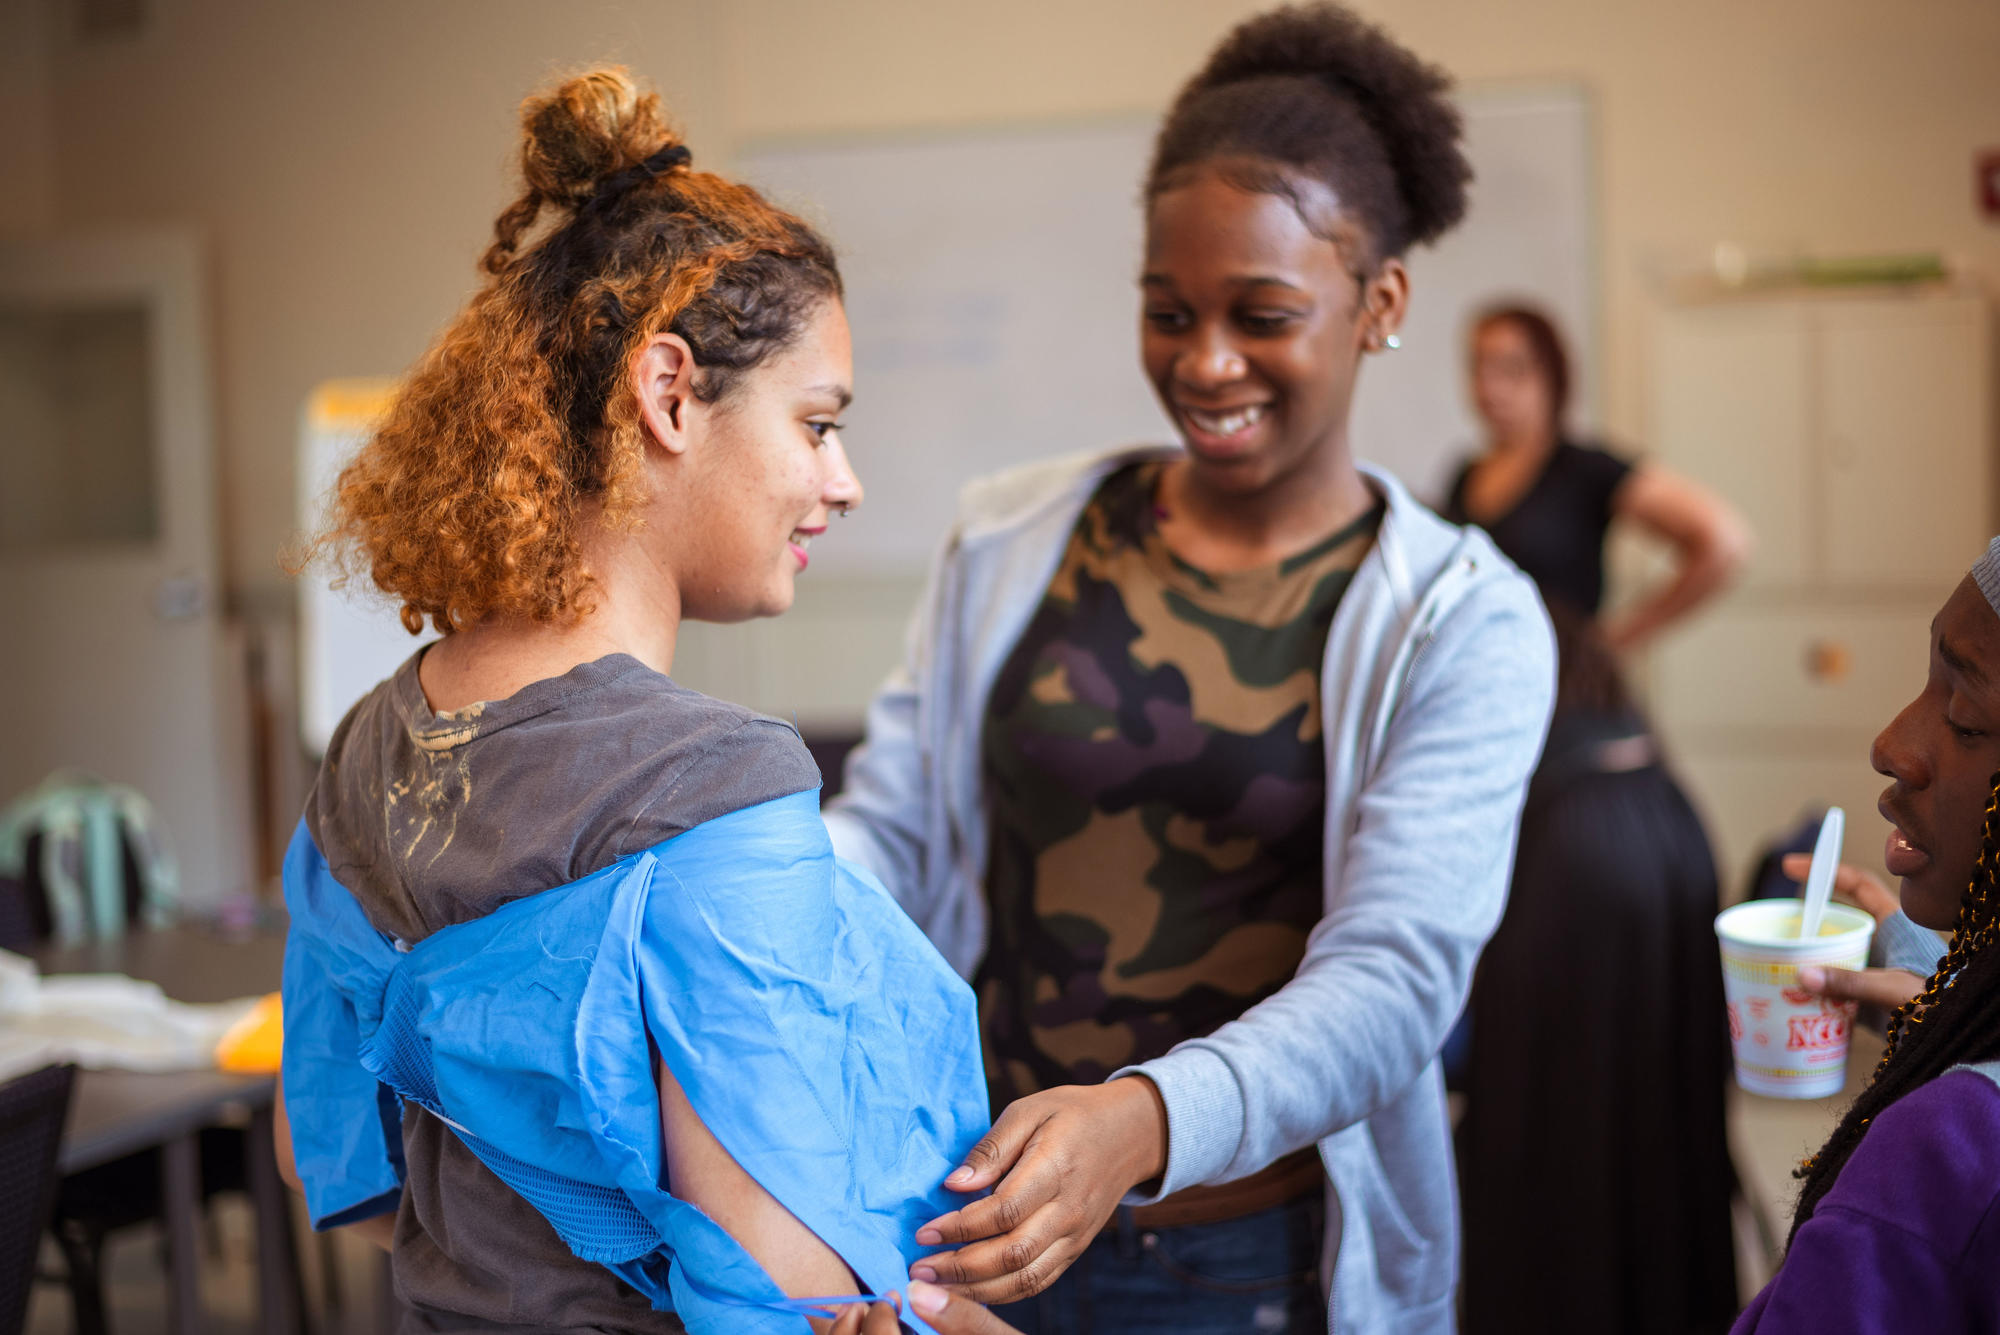 Two Hyde Square Task Force students work together to check the fit of their garments. Photo by Faizal Westcott, June 2019.